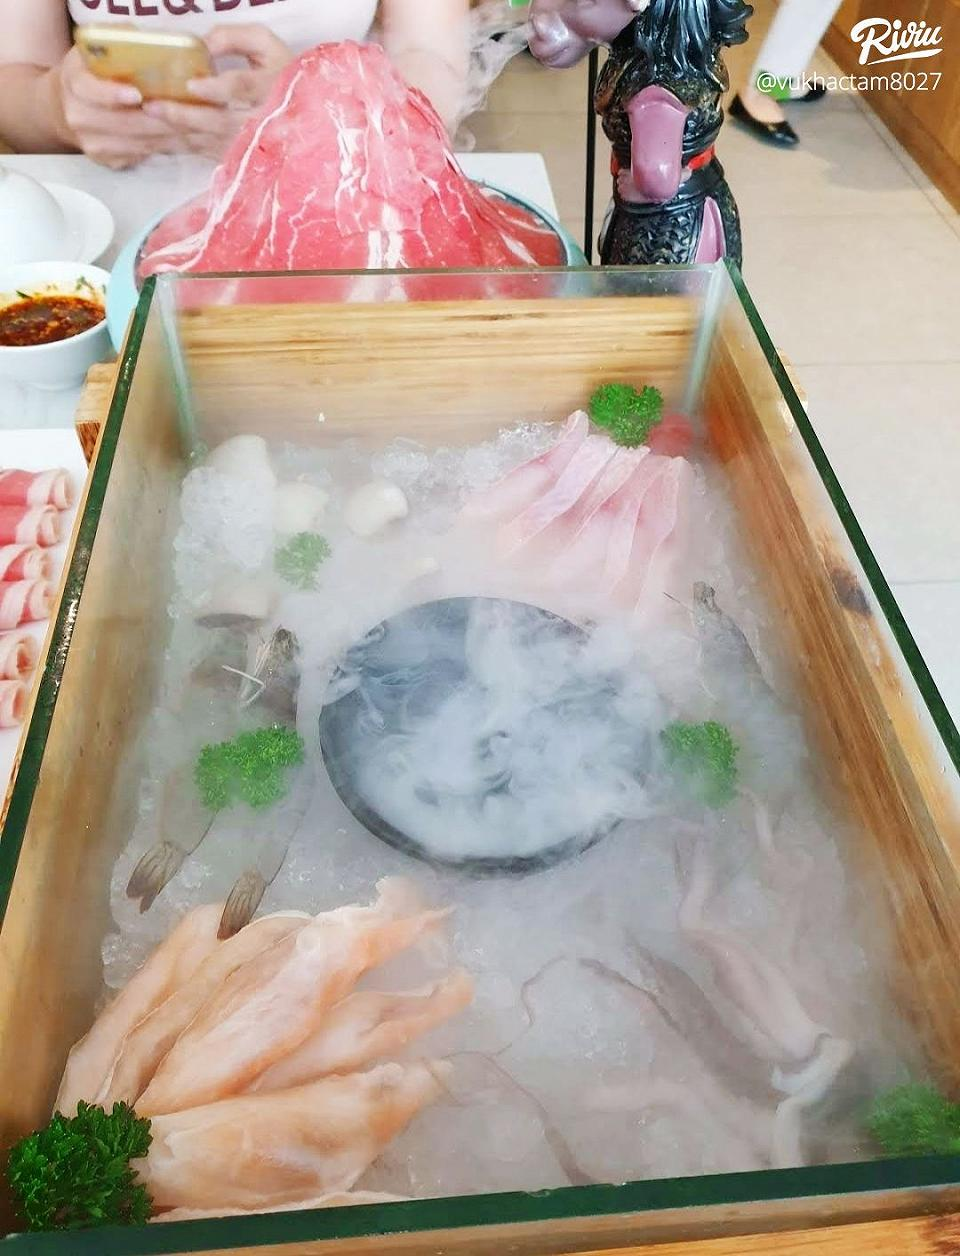 lame hotpot - anh 2